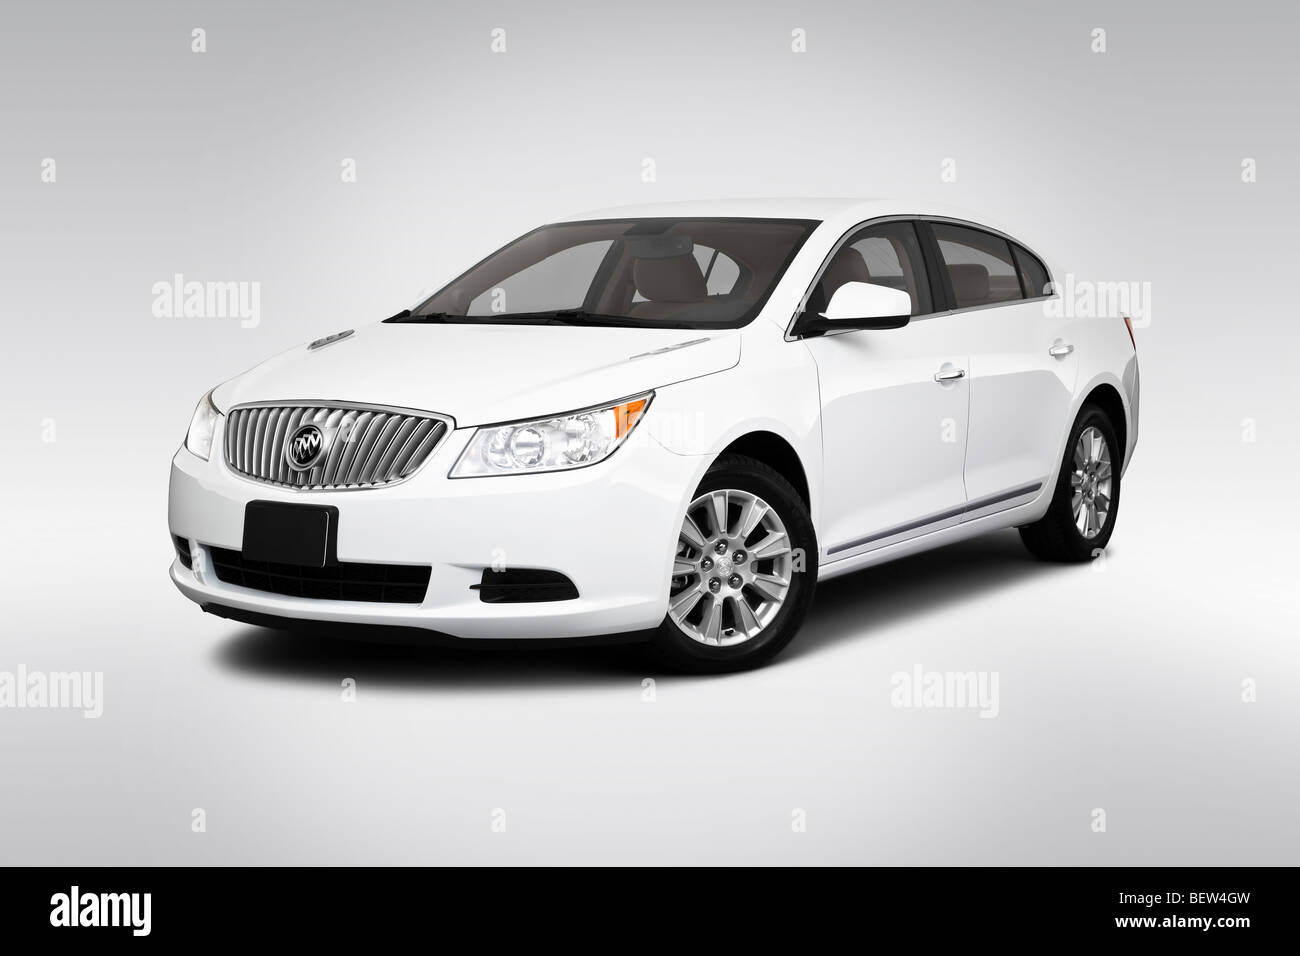 2010 buick lacrosse cx in white front angle view stock photo 2010 buick lacrosse cx in white front angle view publicscrutiny Images